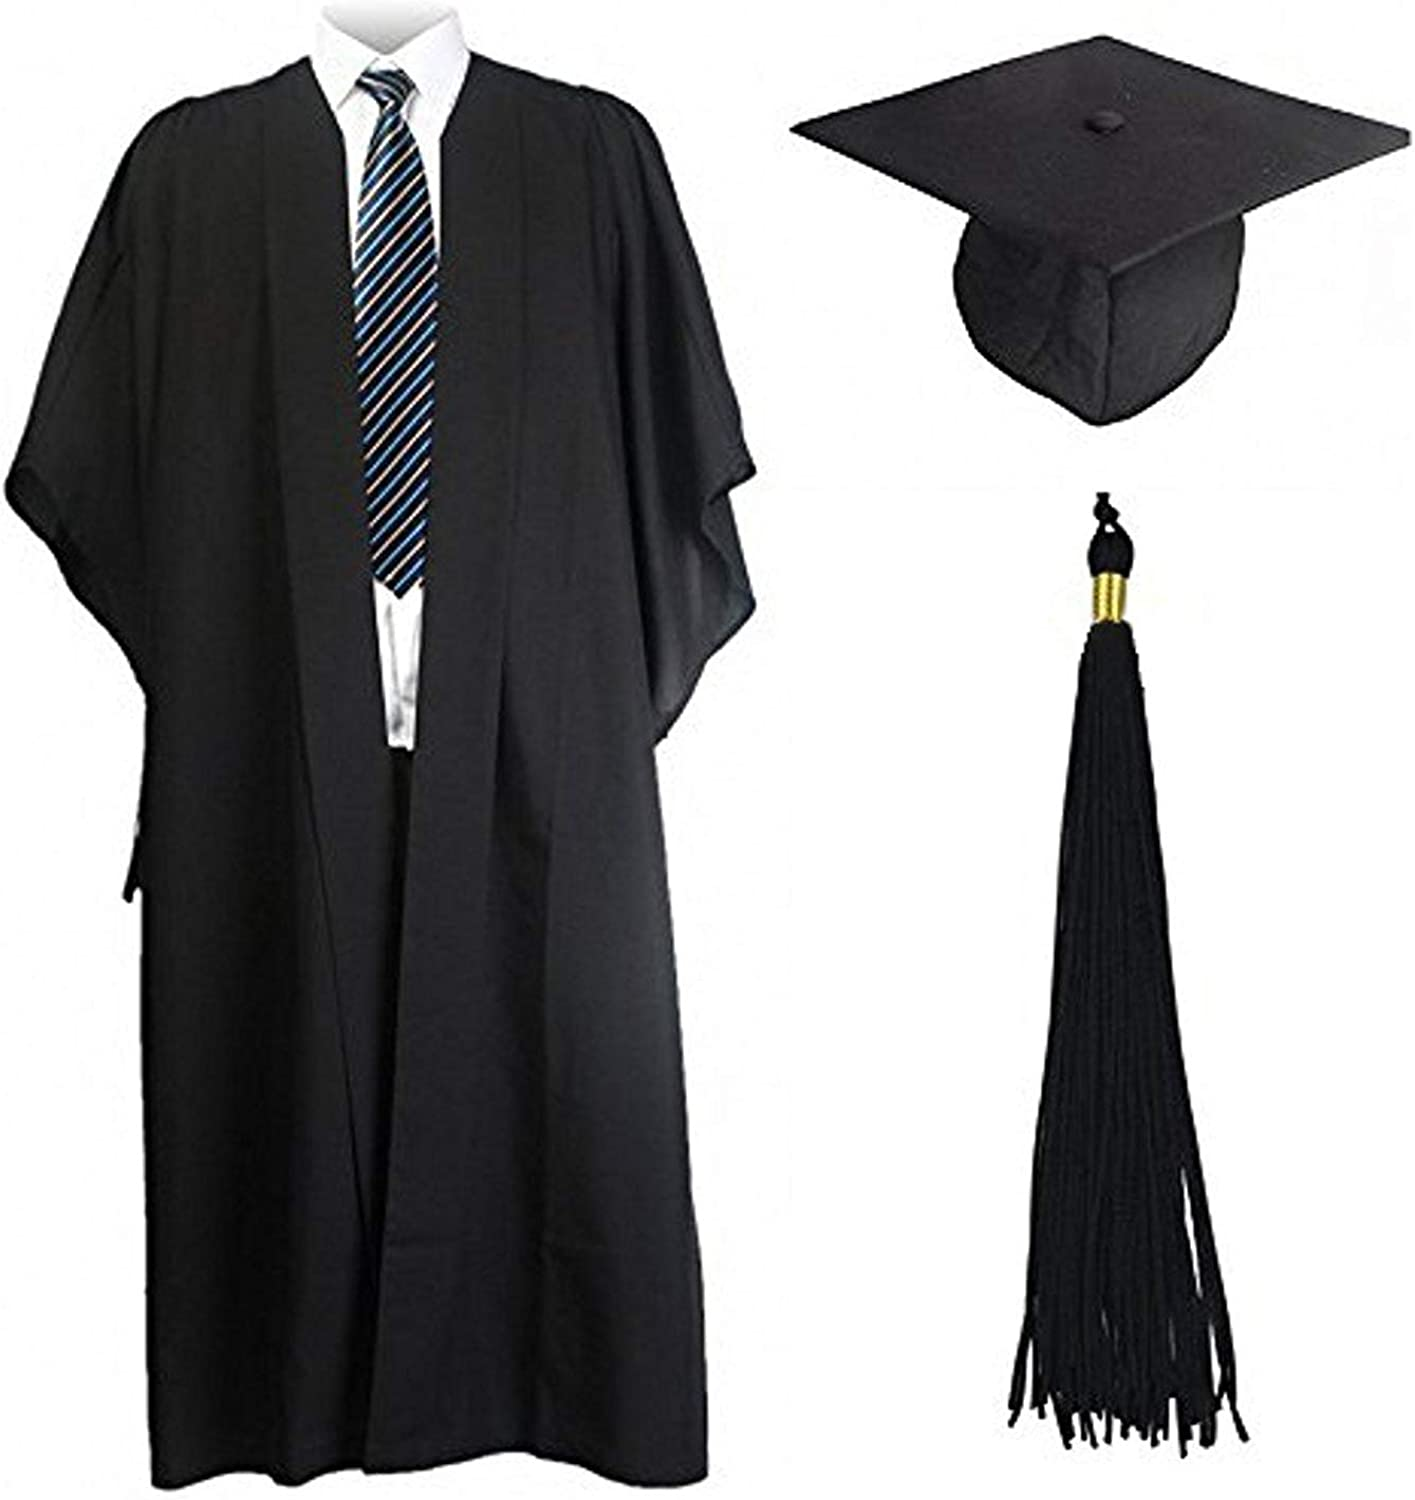 GraduationMall Fluted Academic Graduation Gown with America Cap for Bachelor